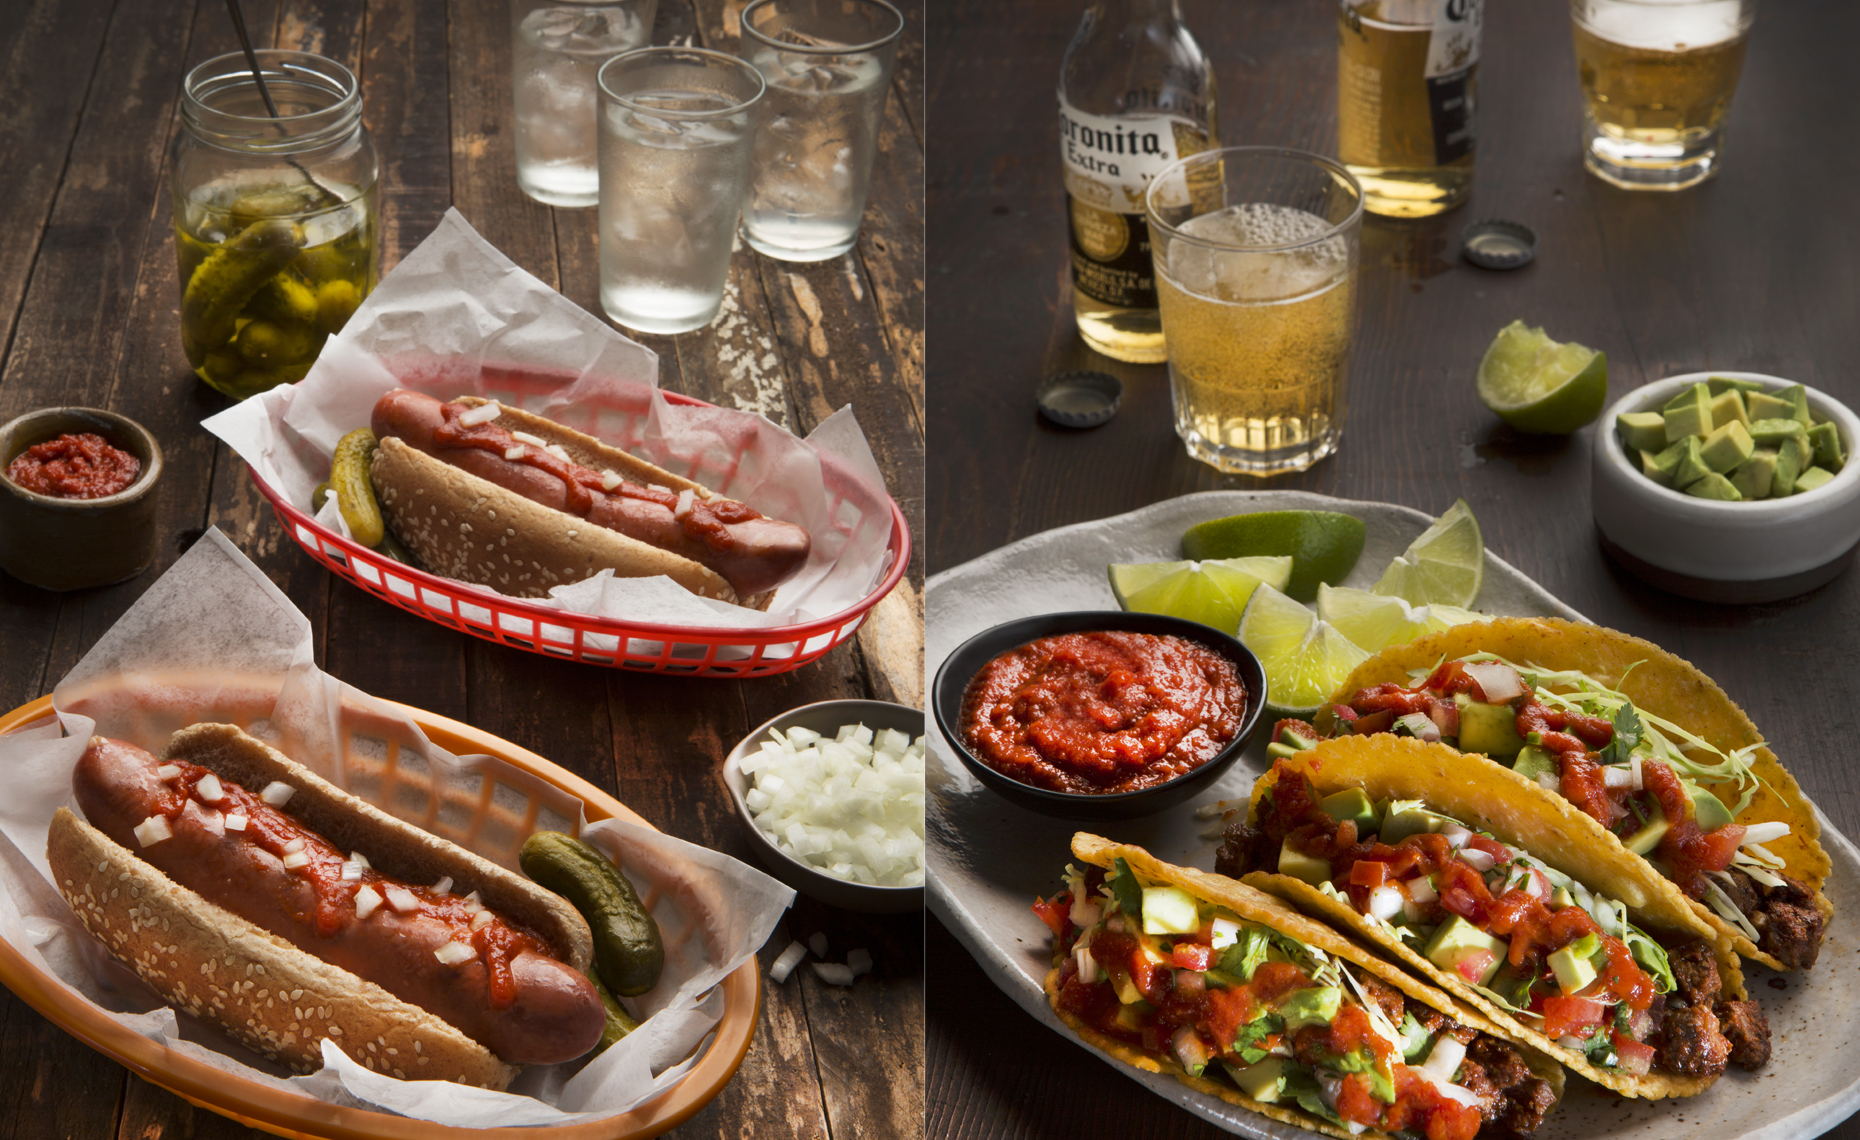 san francisco food  photographer, New York, Hot Dogs & Beef Tacos